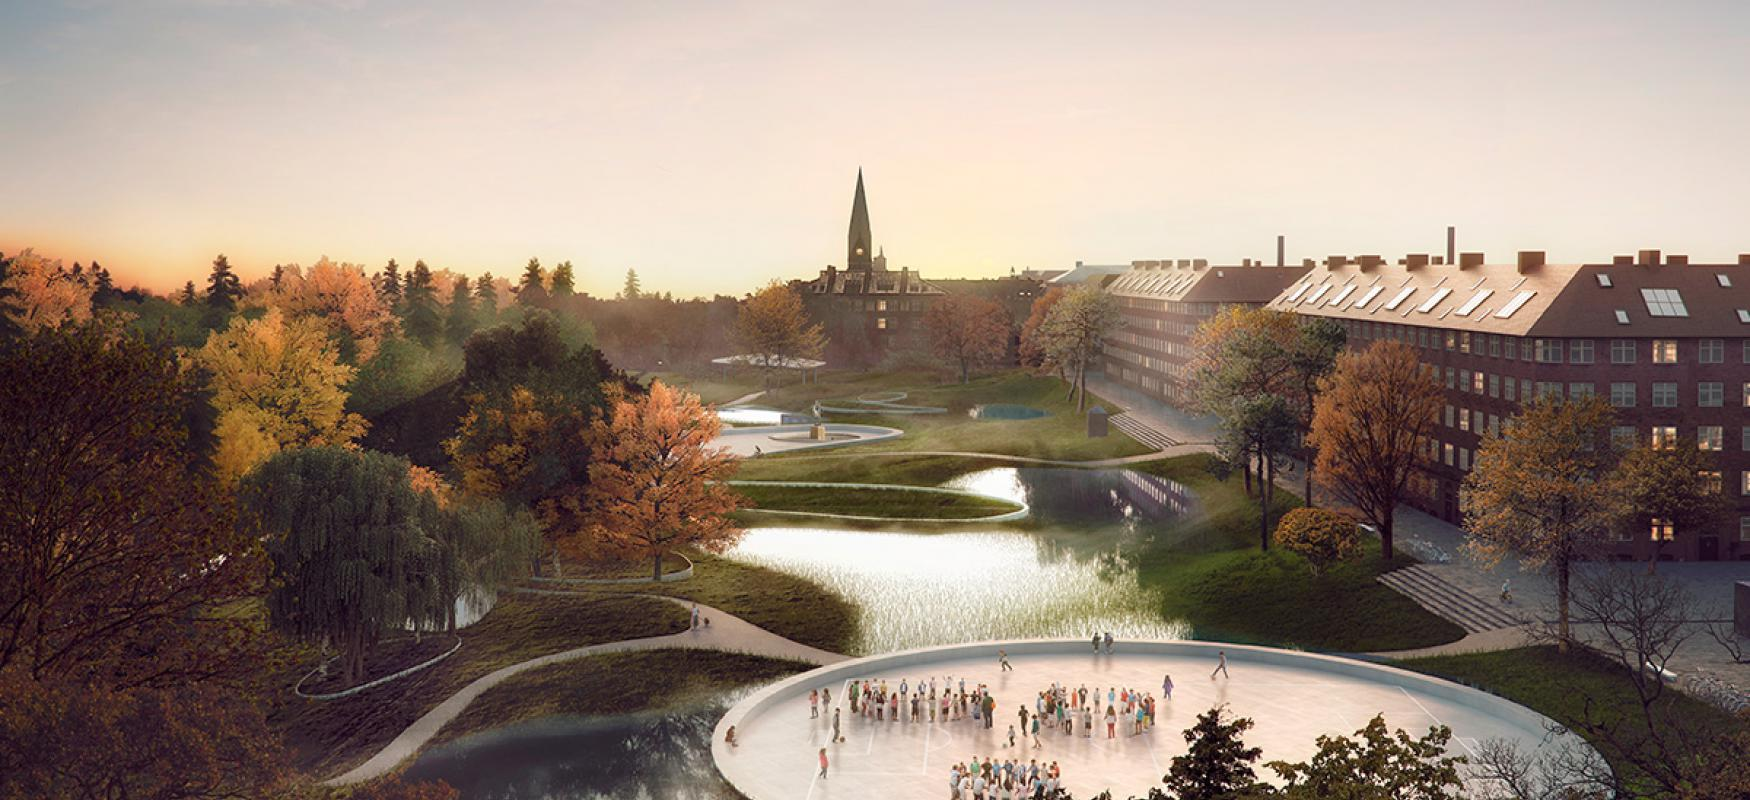 Render of the Soul of Nørrebro project showing Hans Tavsens park in Copenhagen